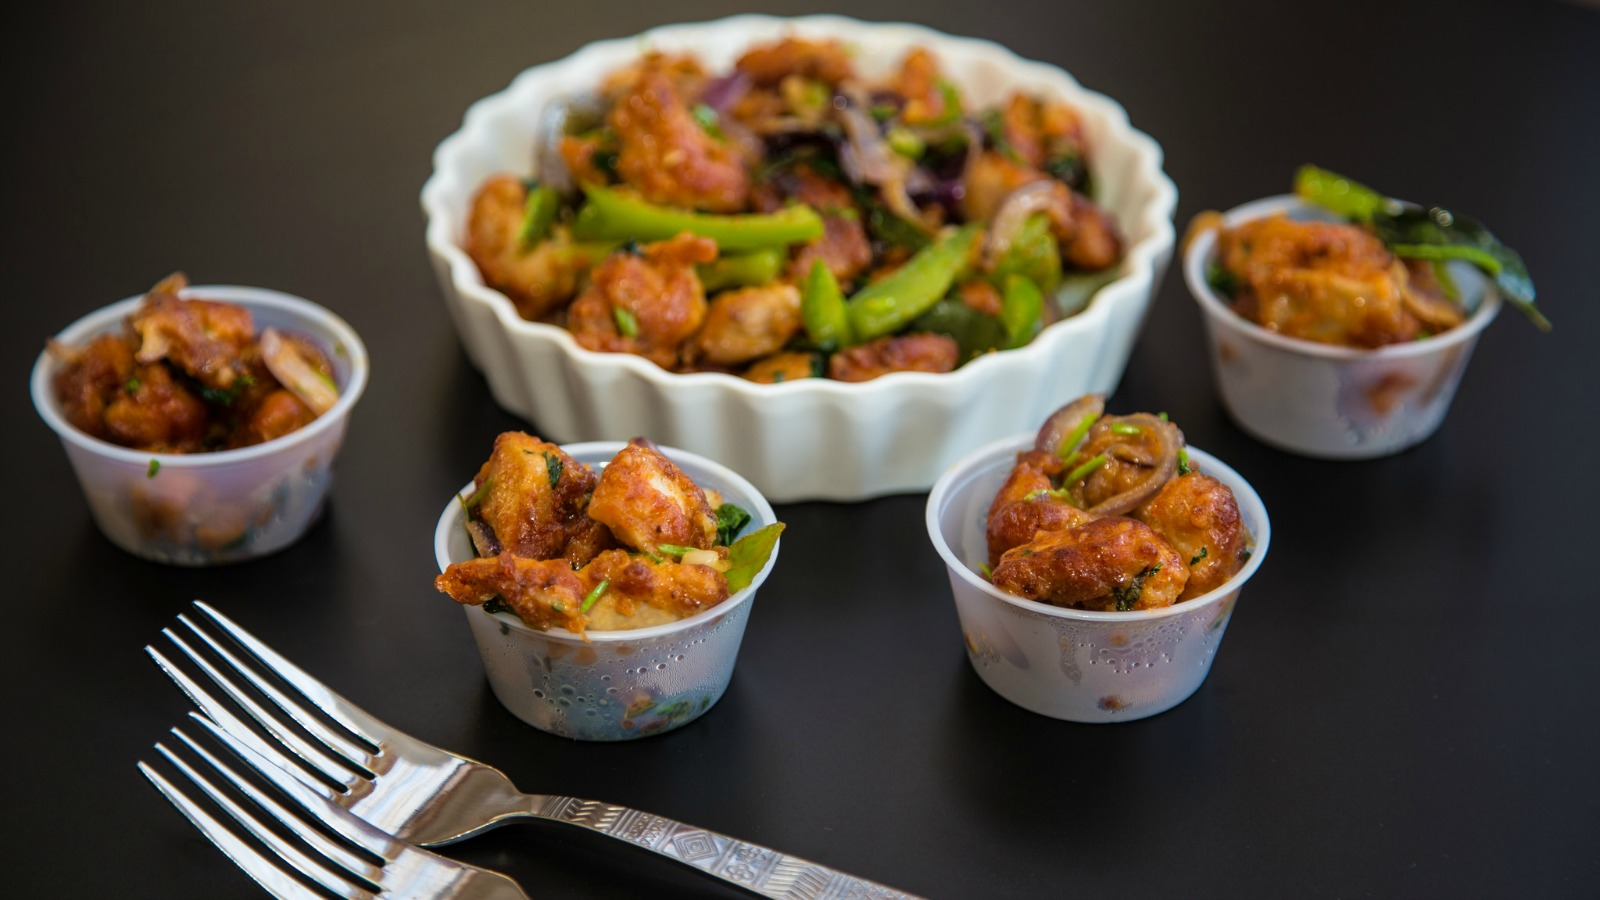 Mumbai food: 40 dishes you must try | CNN Travel